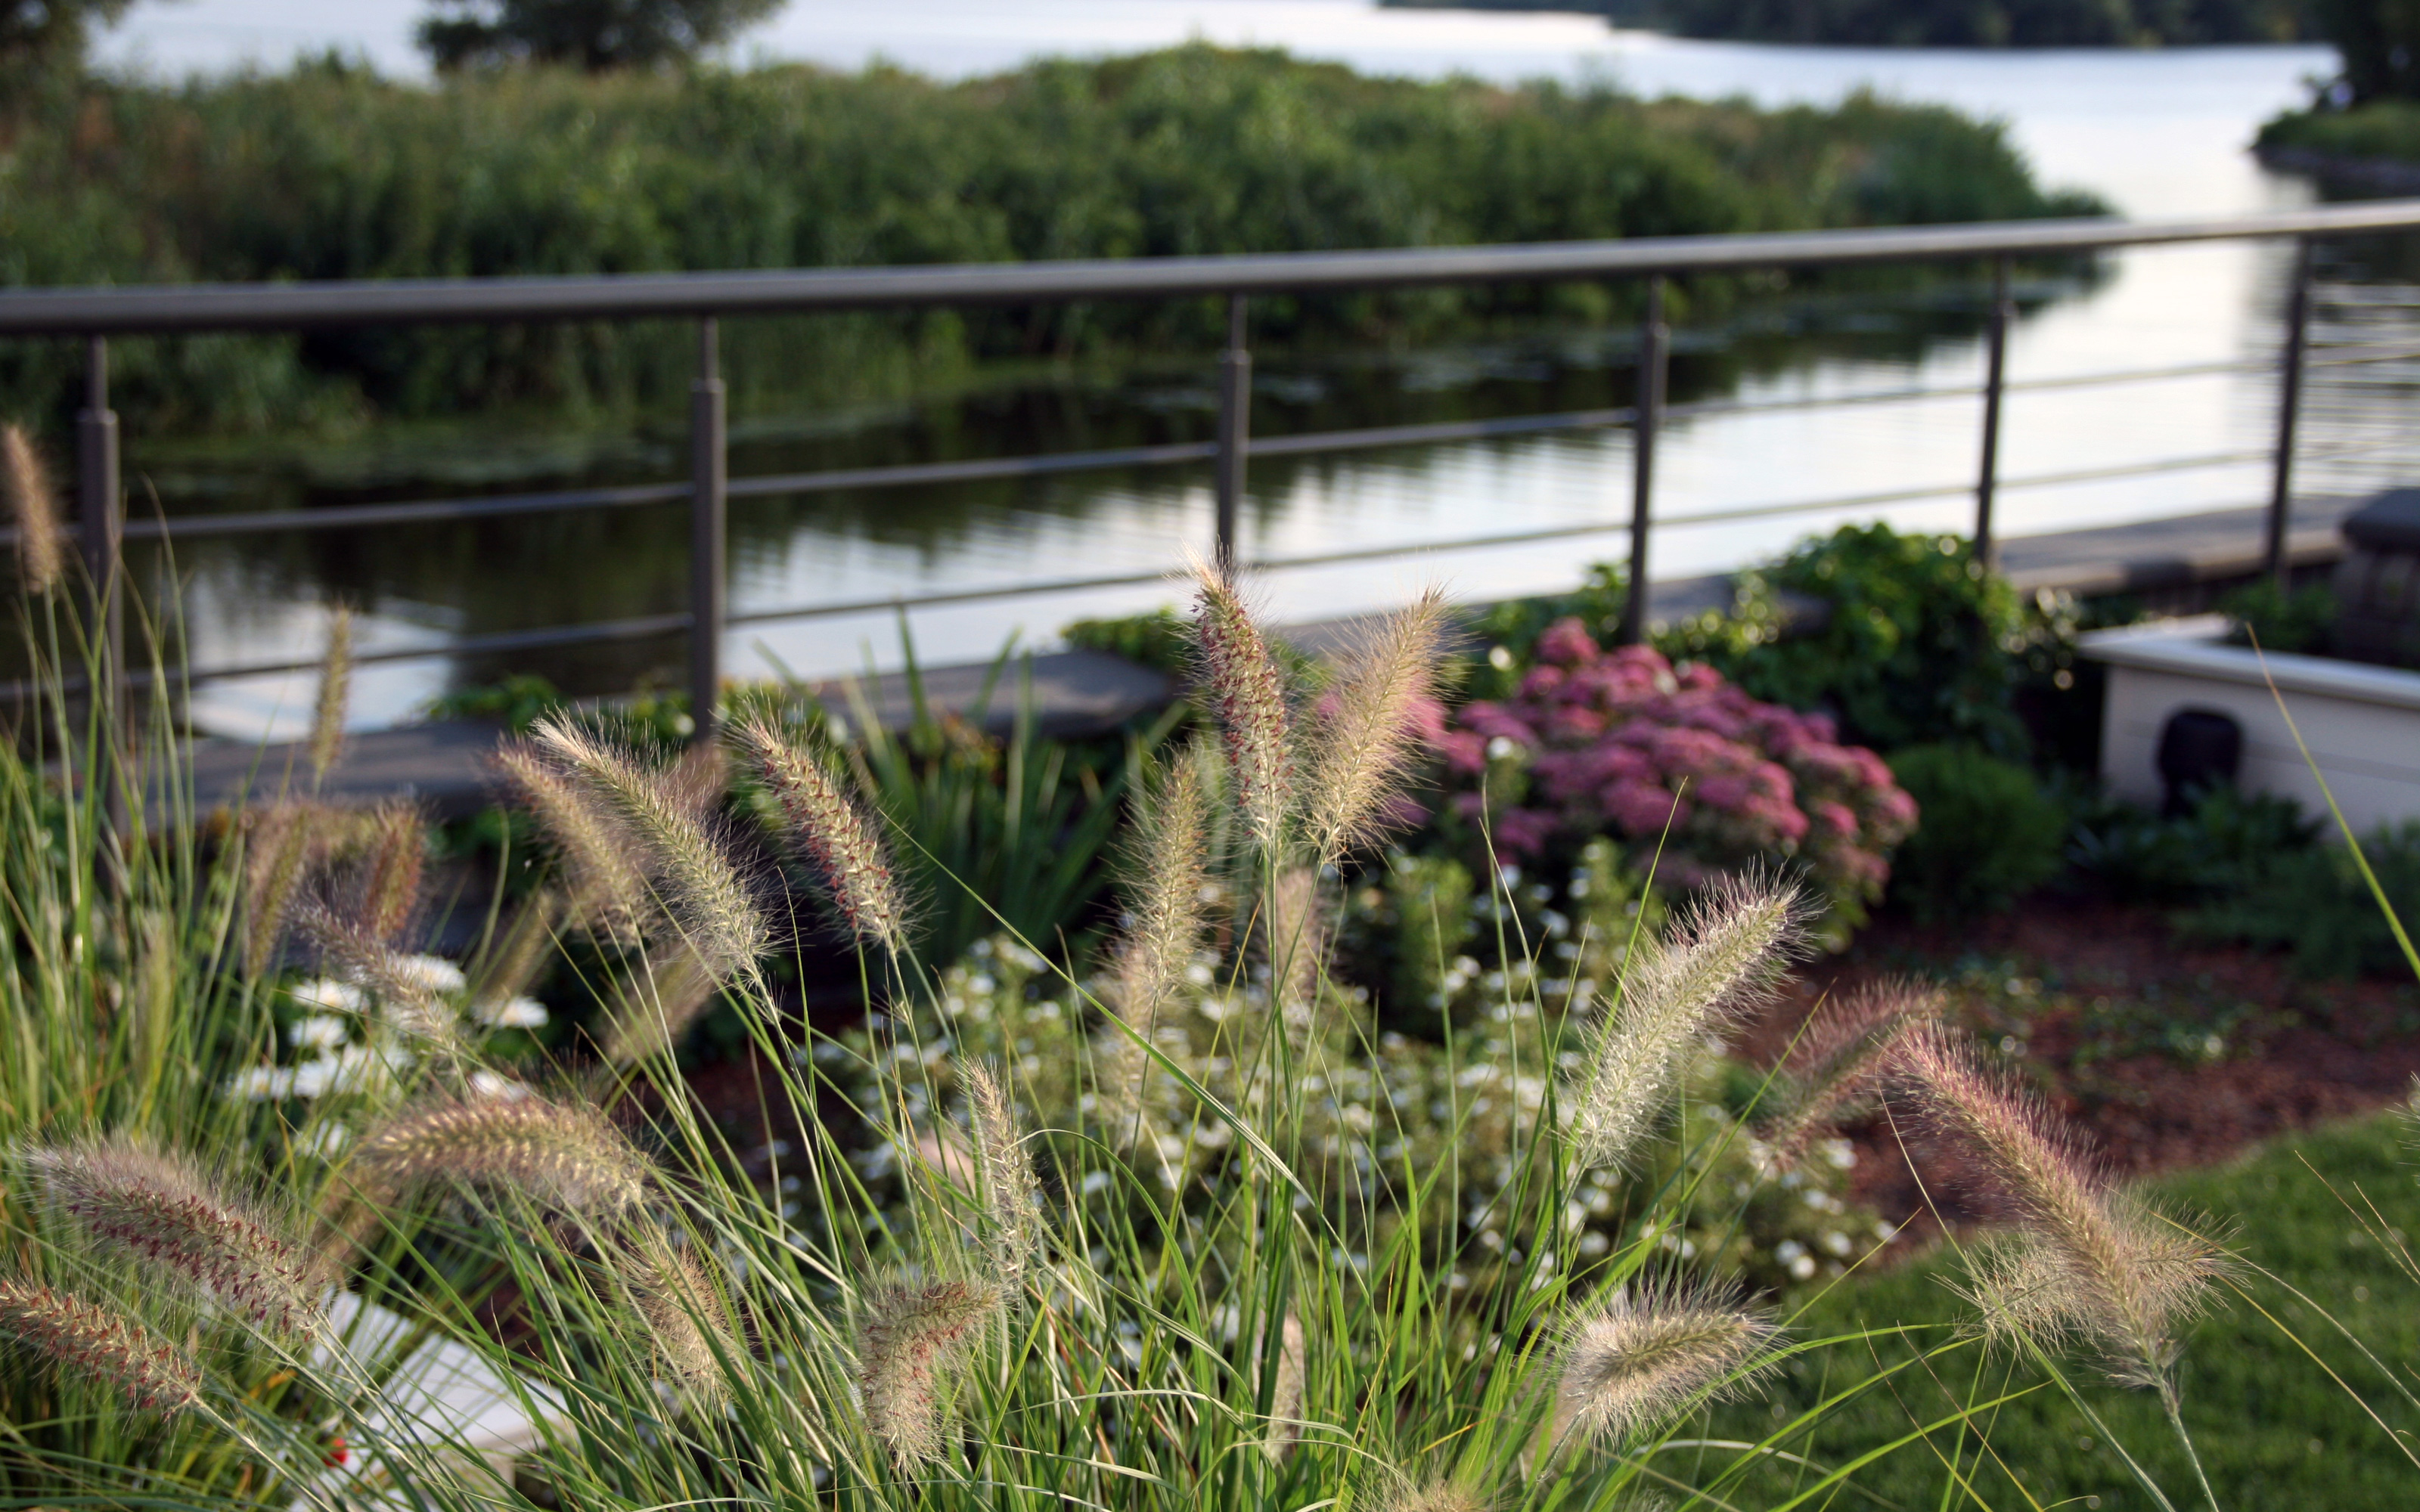 Green roof with lawn, shrubs and ornamental grasses